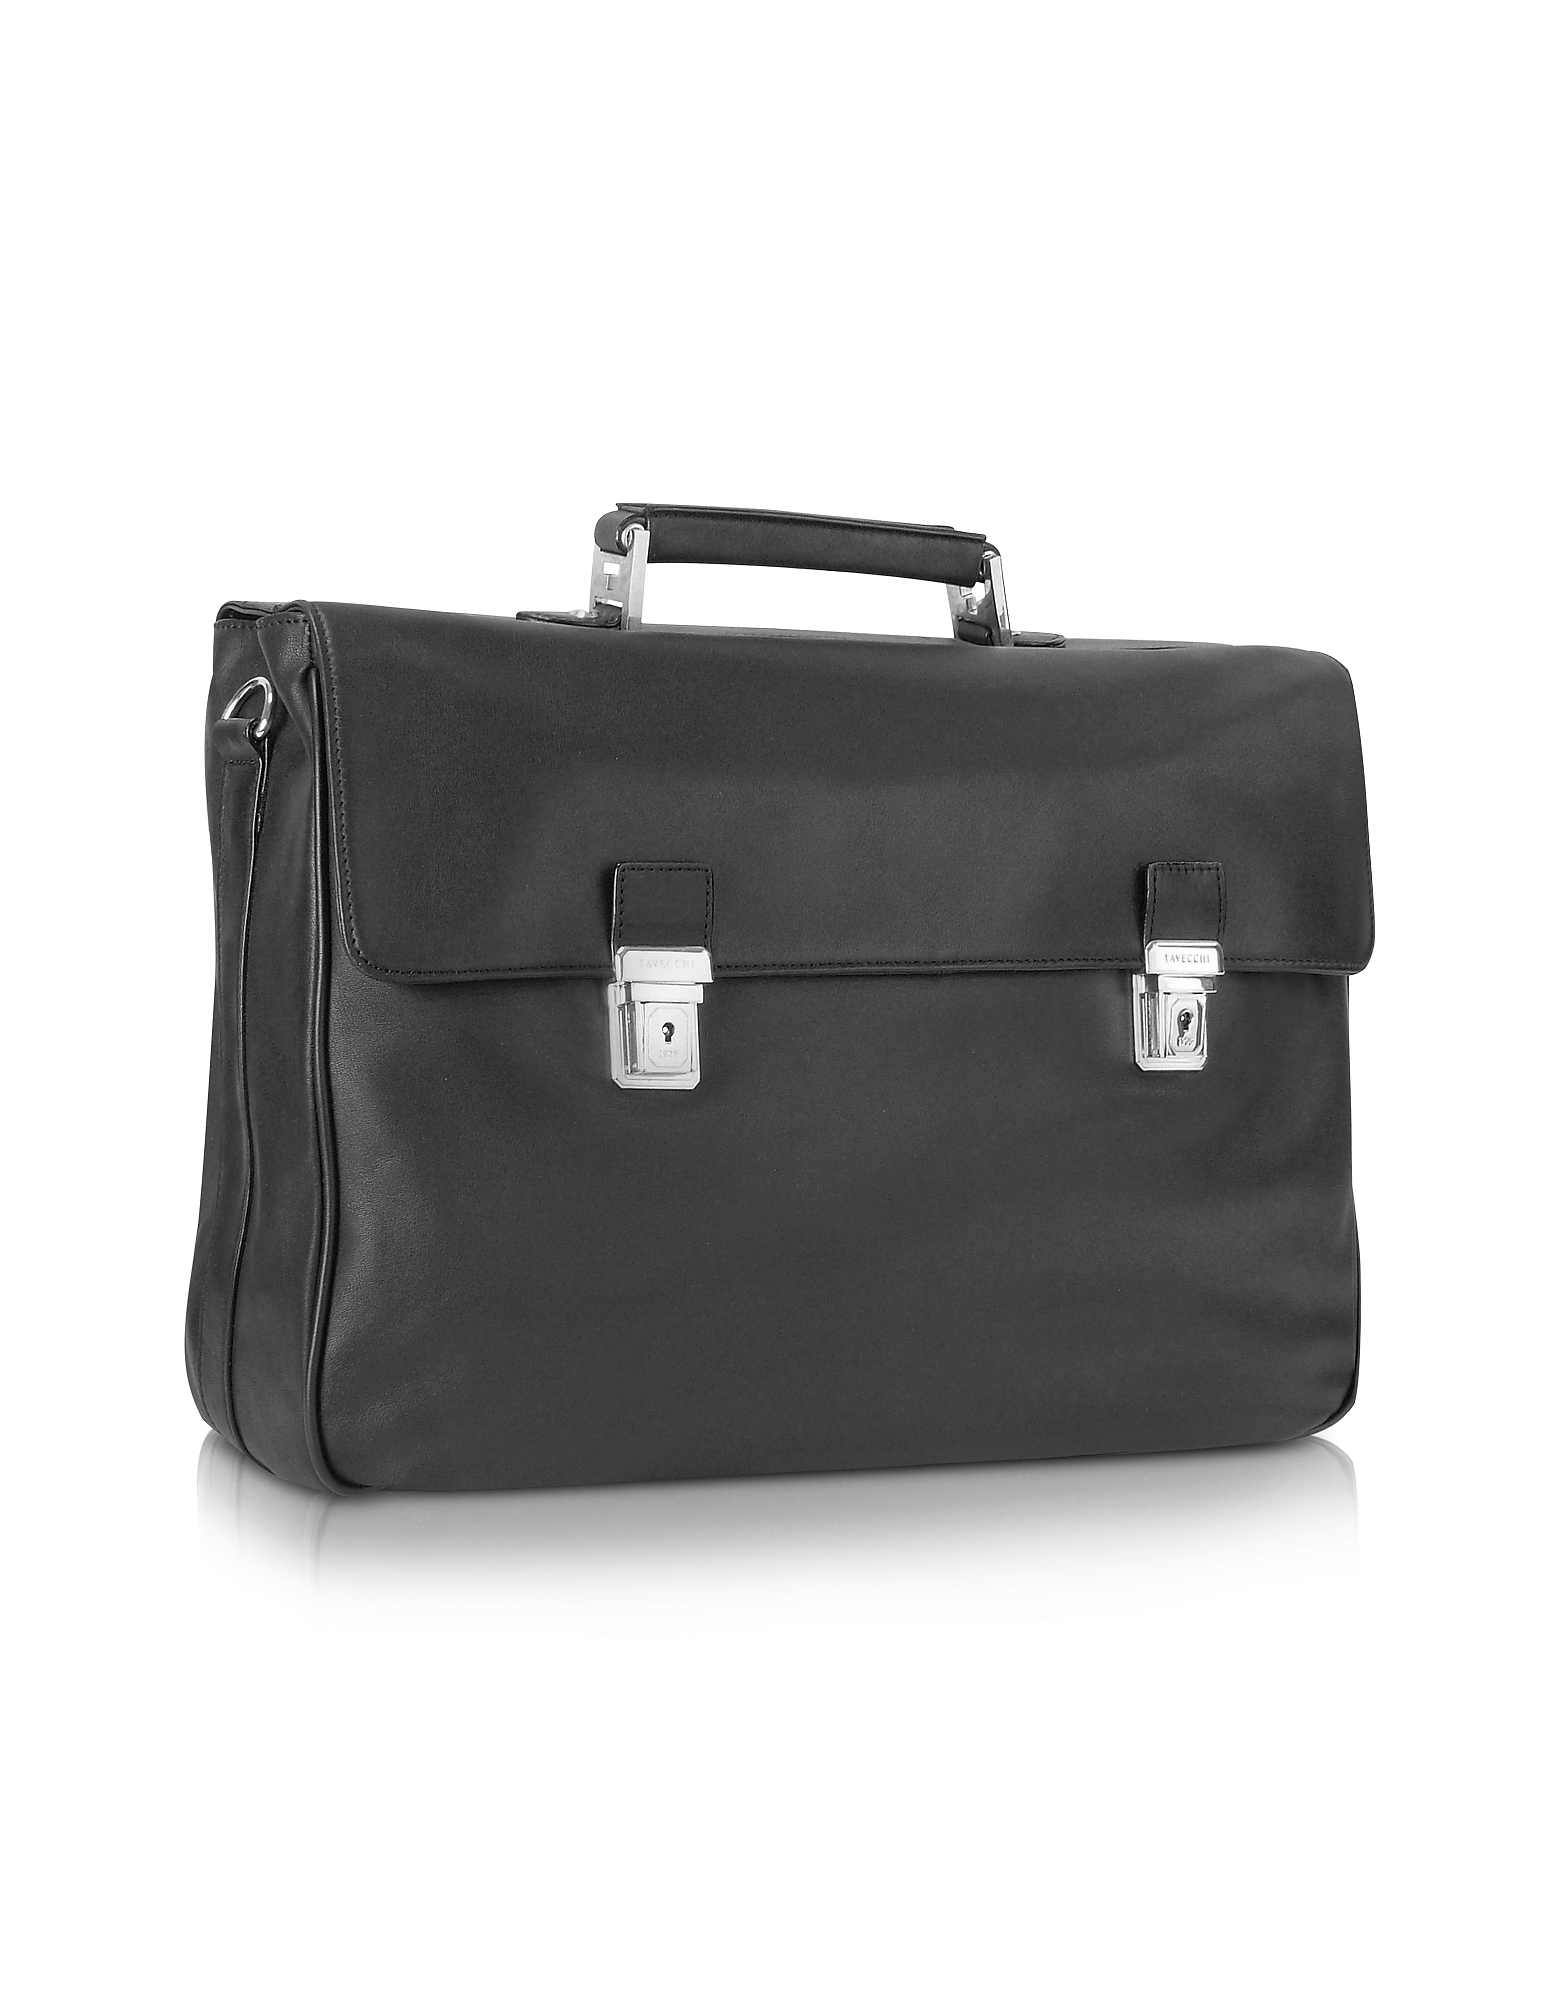 Tavecchi Briefcases, Polo - Black Double Gusset Nappa Leather Briefcase